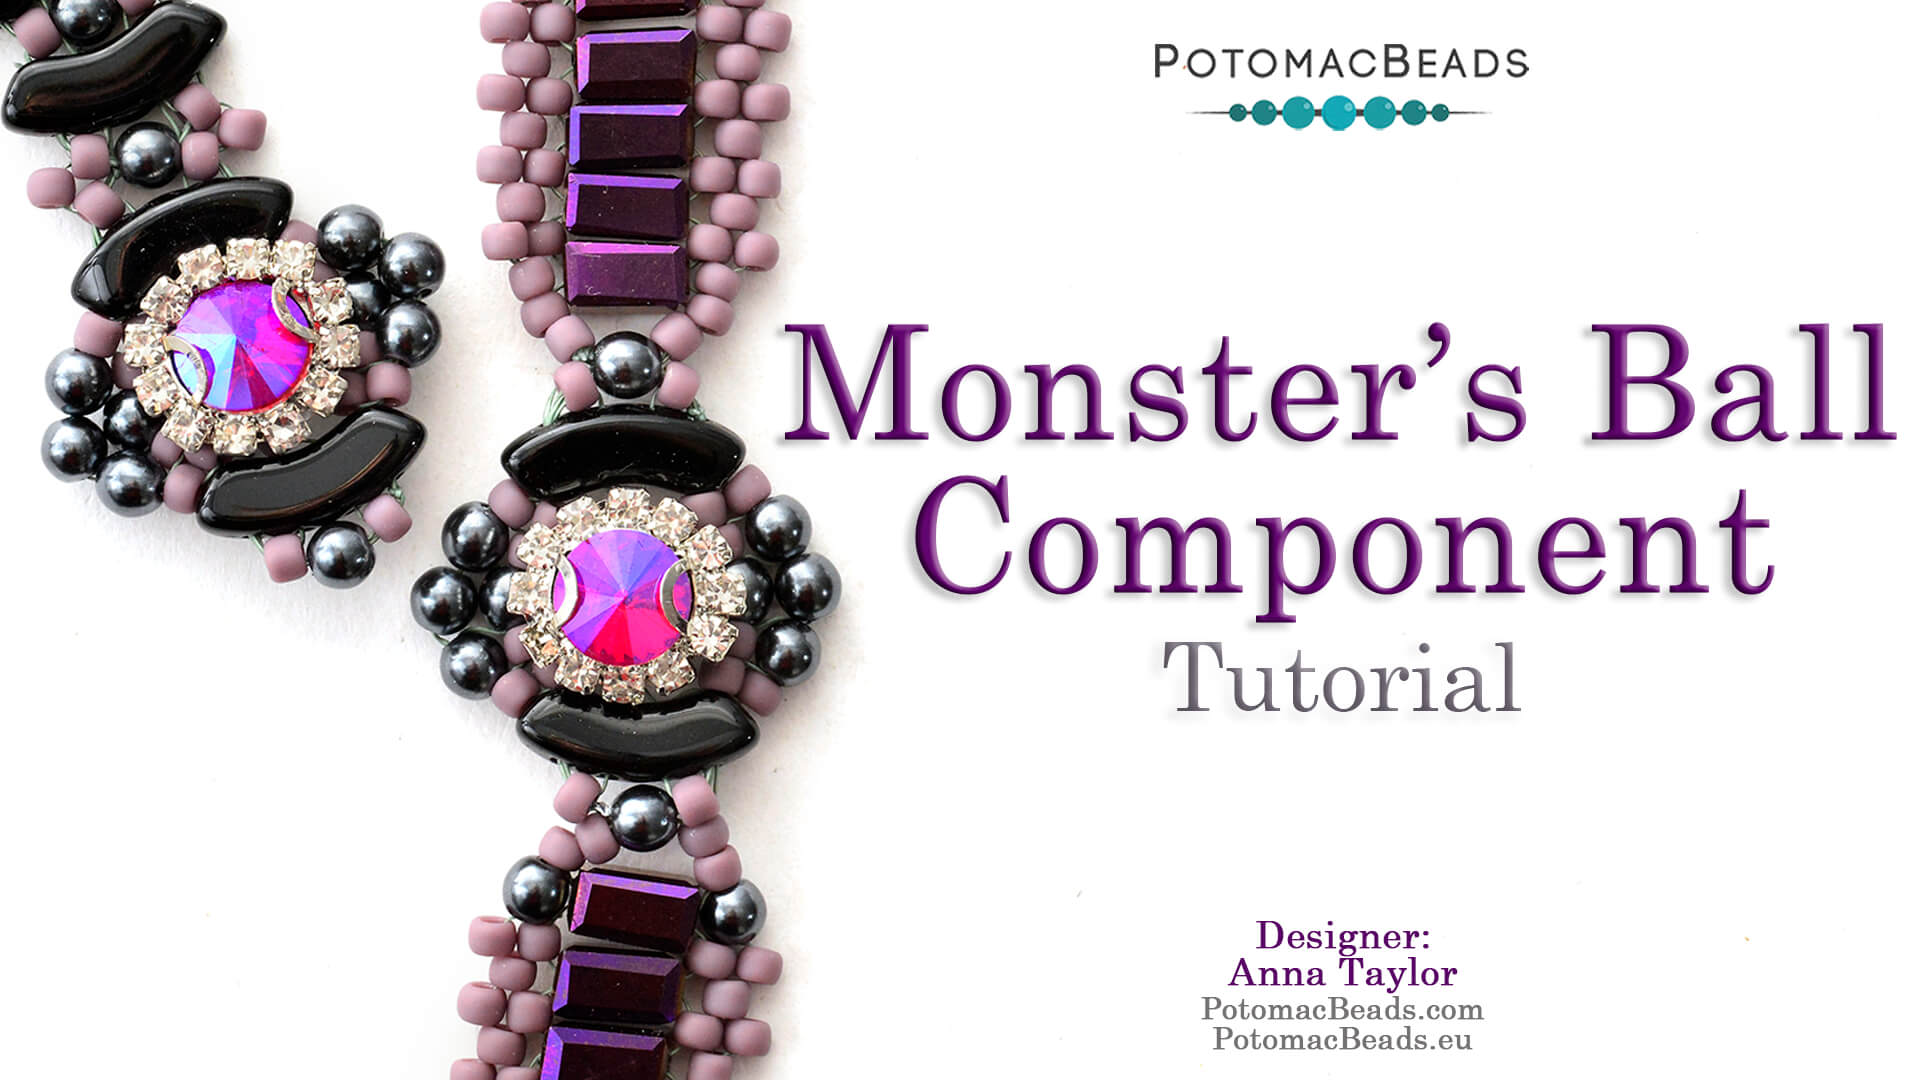 How to Bead Jewelry / Videos Sorted by Beads / Pearl Videos (Czech, Freshwater, Potomac Pearls) / Monster's Ball Component